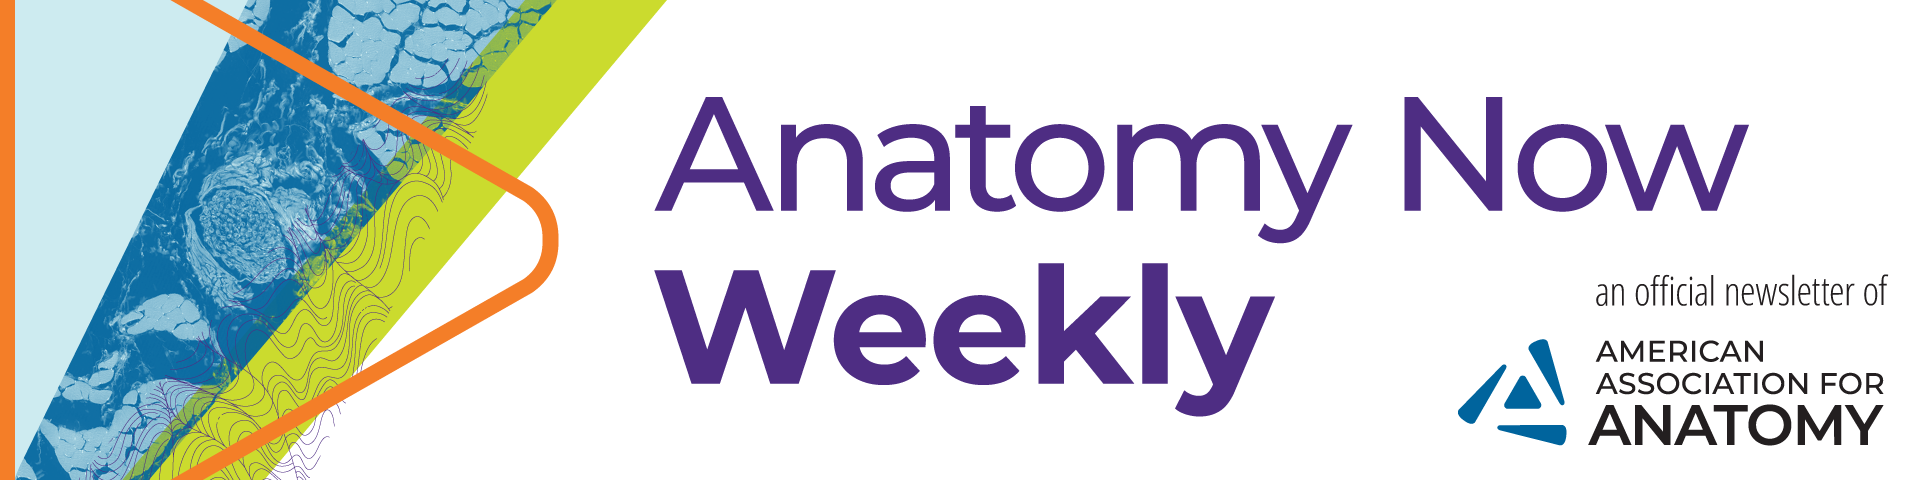 Anatomy Now Weekly header